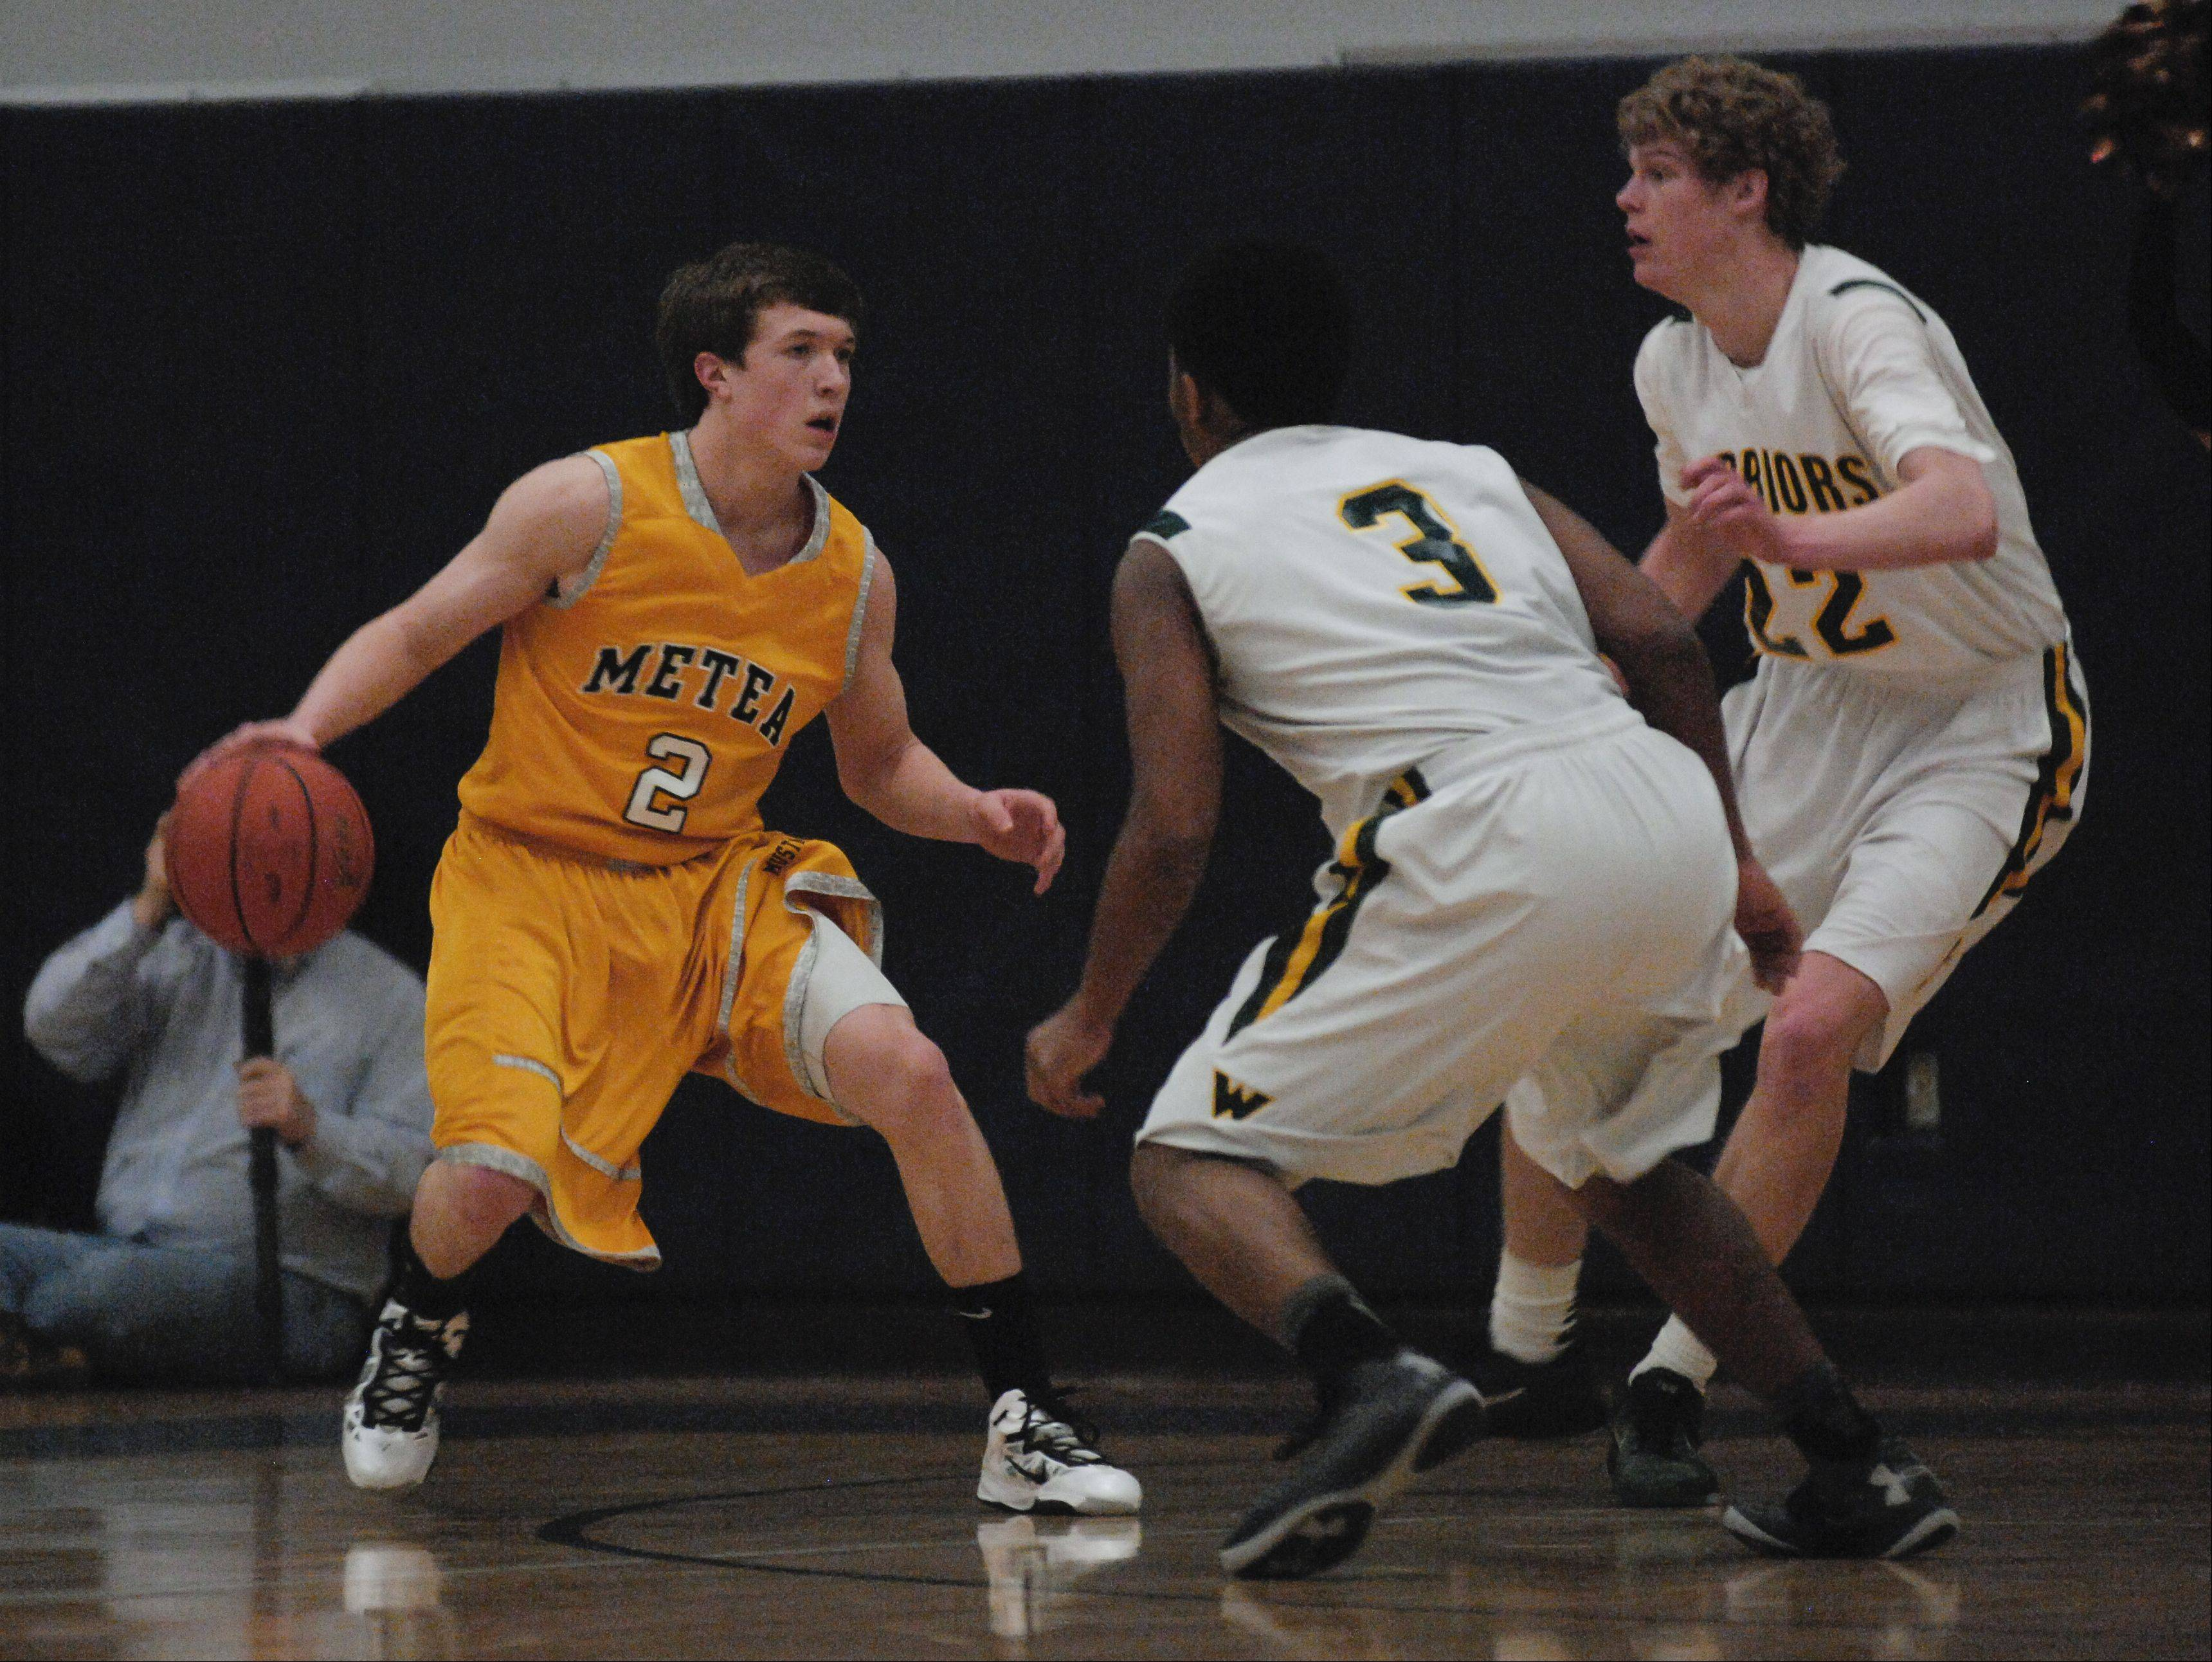 Connor Archey of Metea Valley looks to move around Waubonsie Valley defenders.